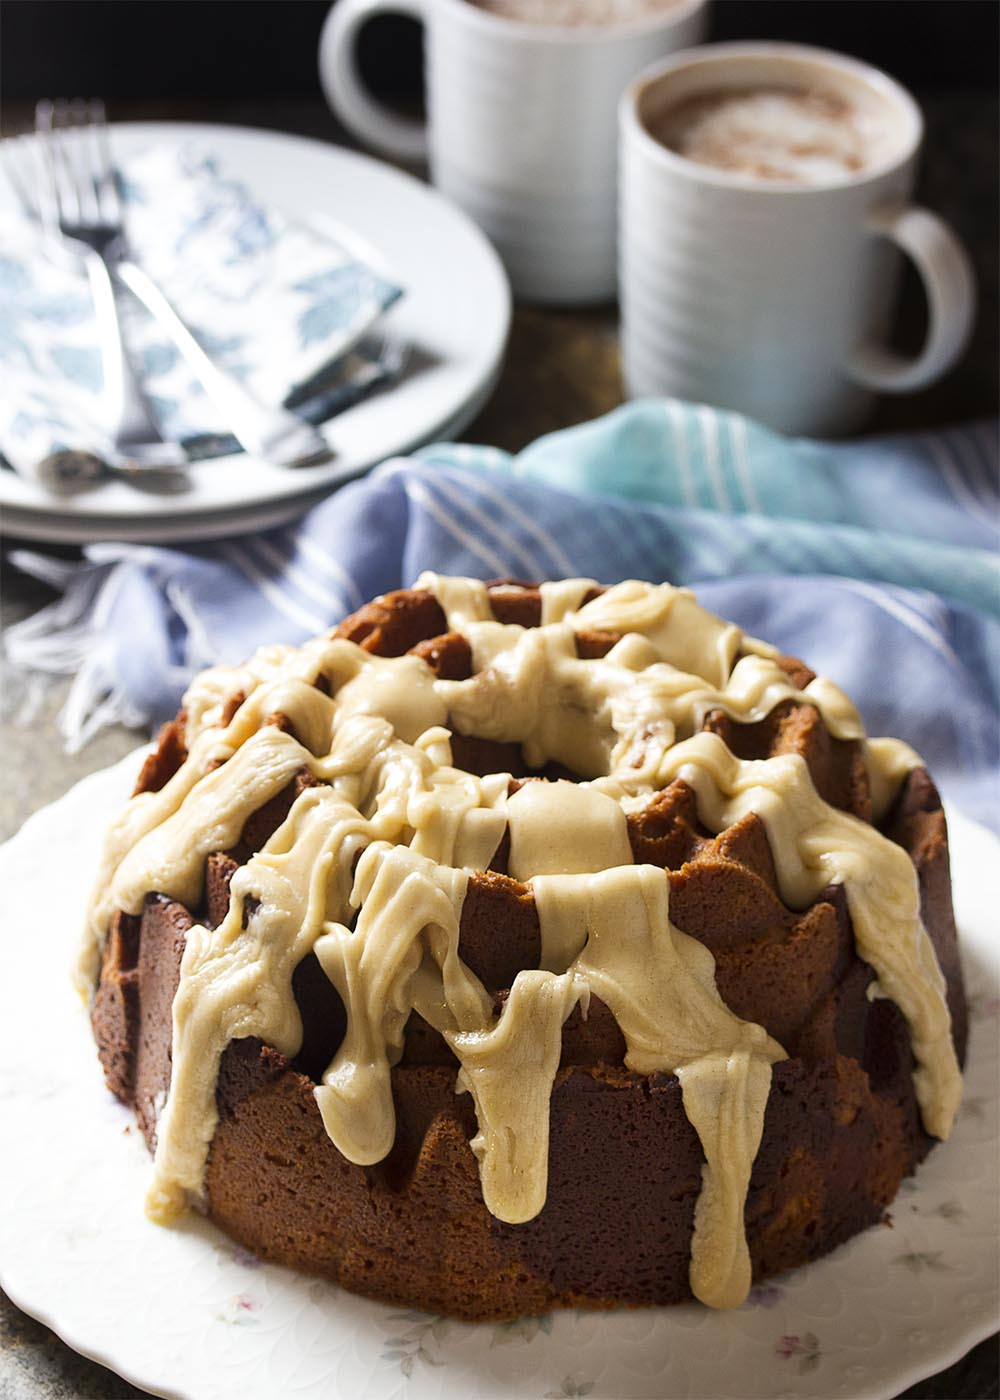 A rose shape cinnamon bundt cake covered with icing sits on a flowered cake platter.